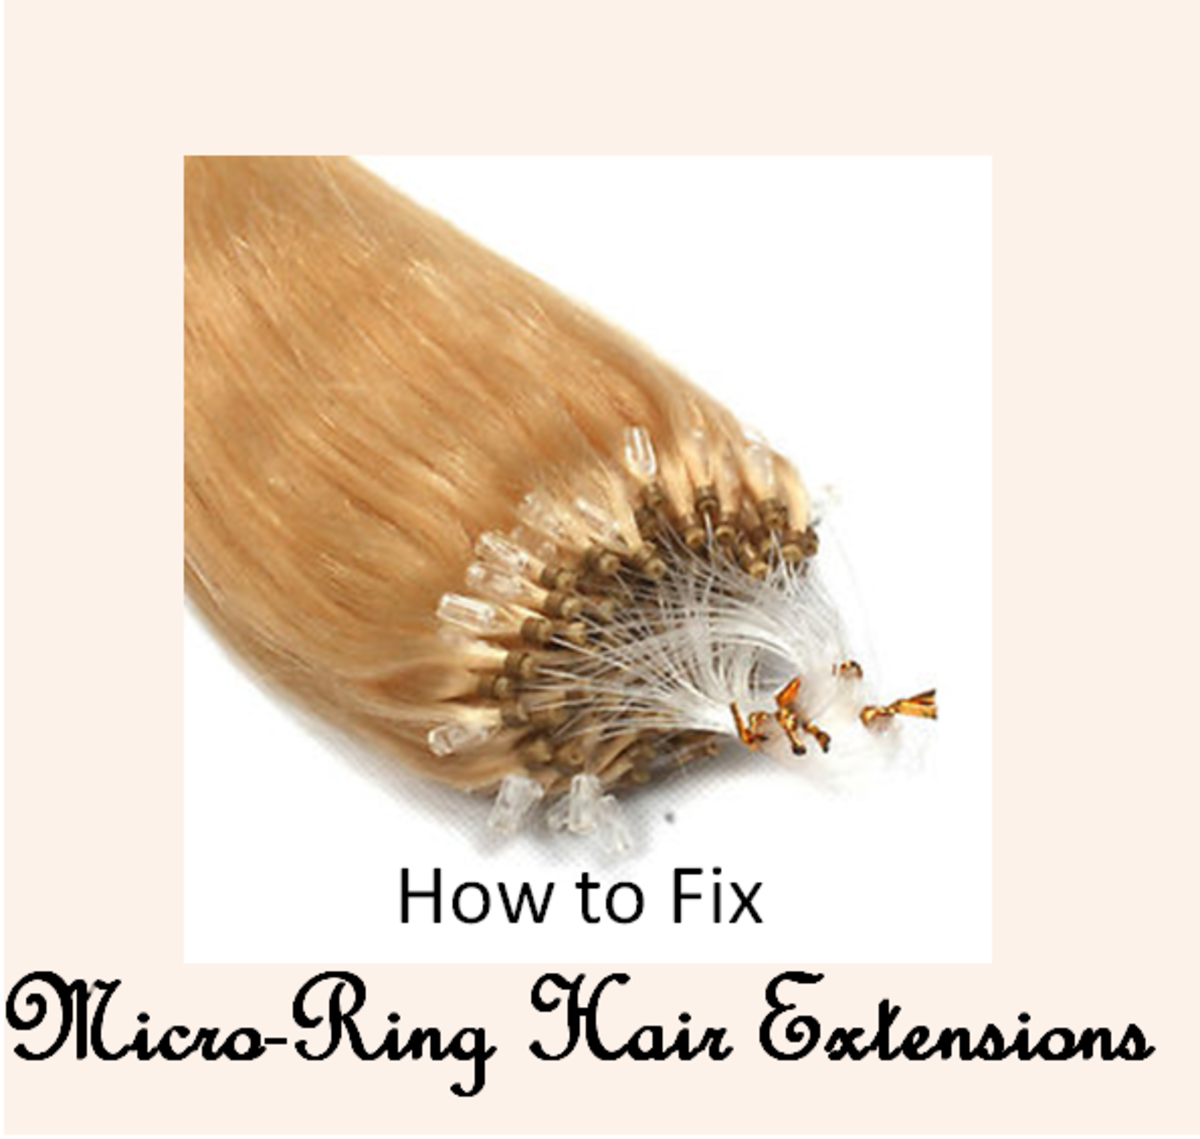 How to Fix Micro-Ring Hair Extensions - A Step-By-Step Guide